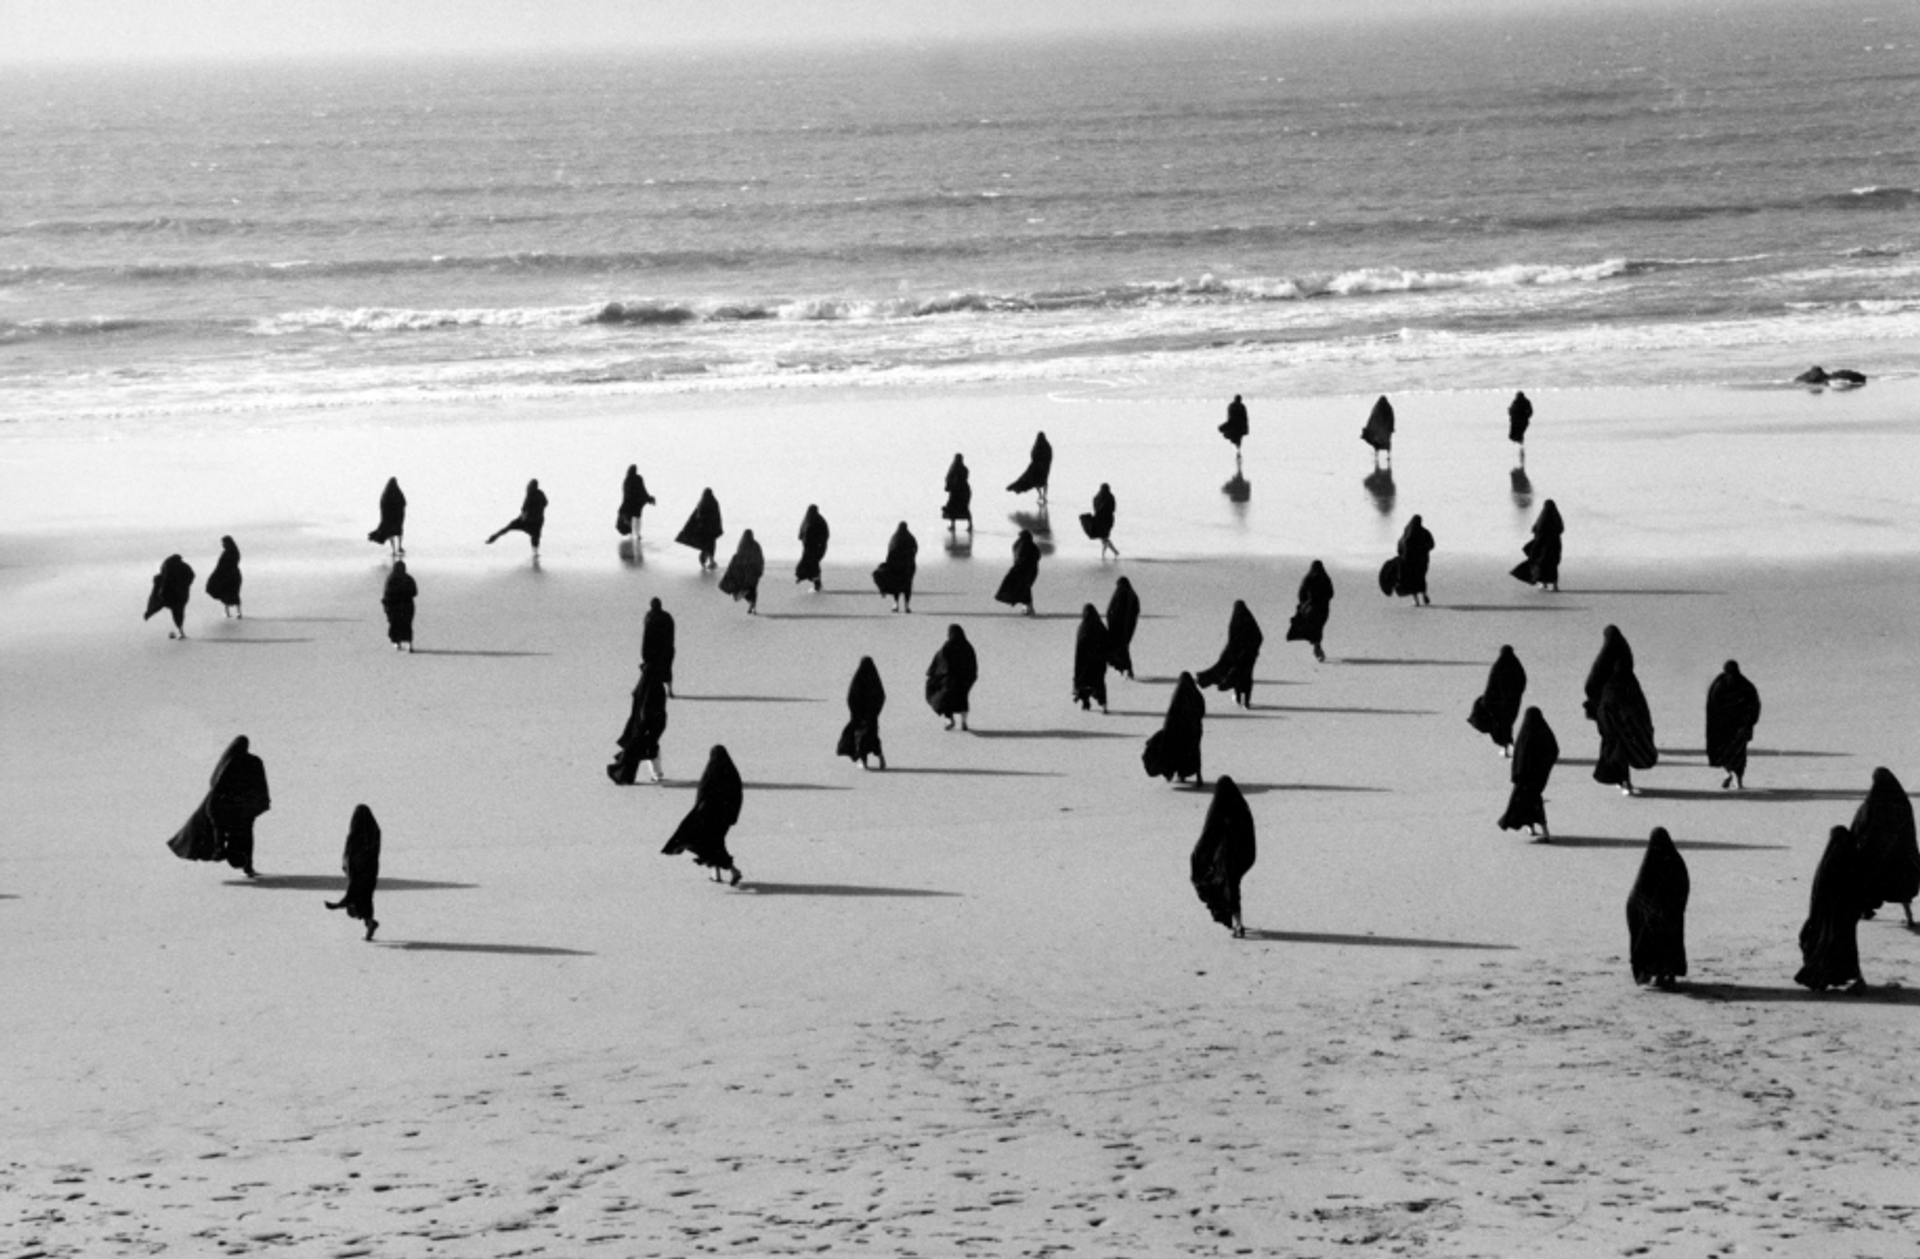 Untitled from the Rapture series, 1999 © Shirin Neshat. Courtesy of the artist, Noirmontartproduction, Paris and the Mohammed Afkhami Foundation